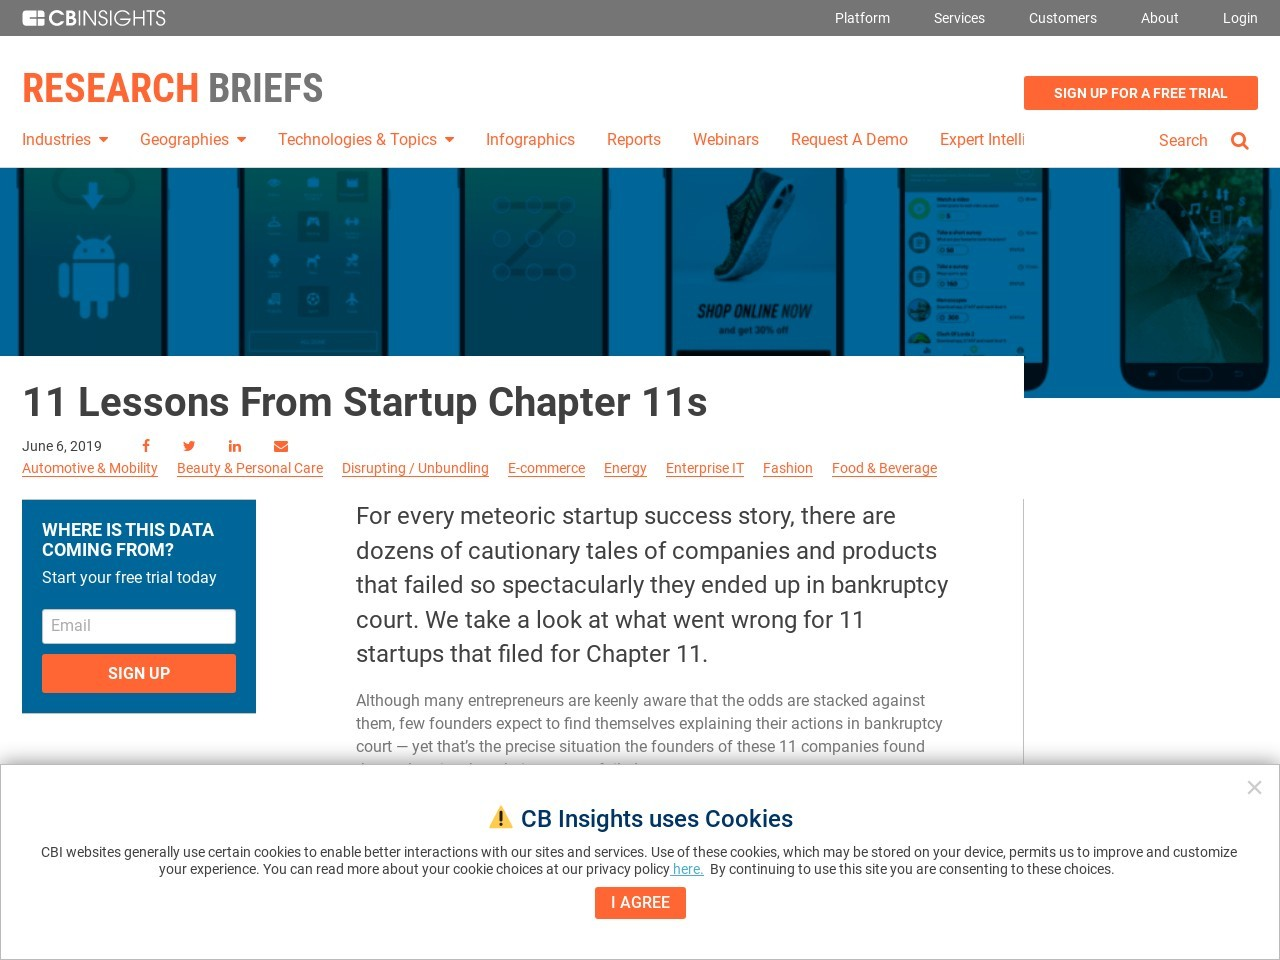 11 Lessons From Startup Chapter 11s